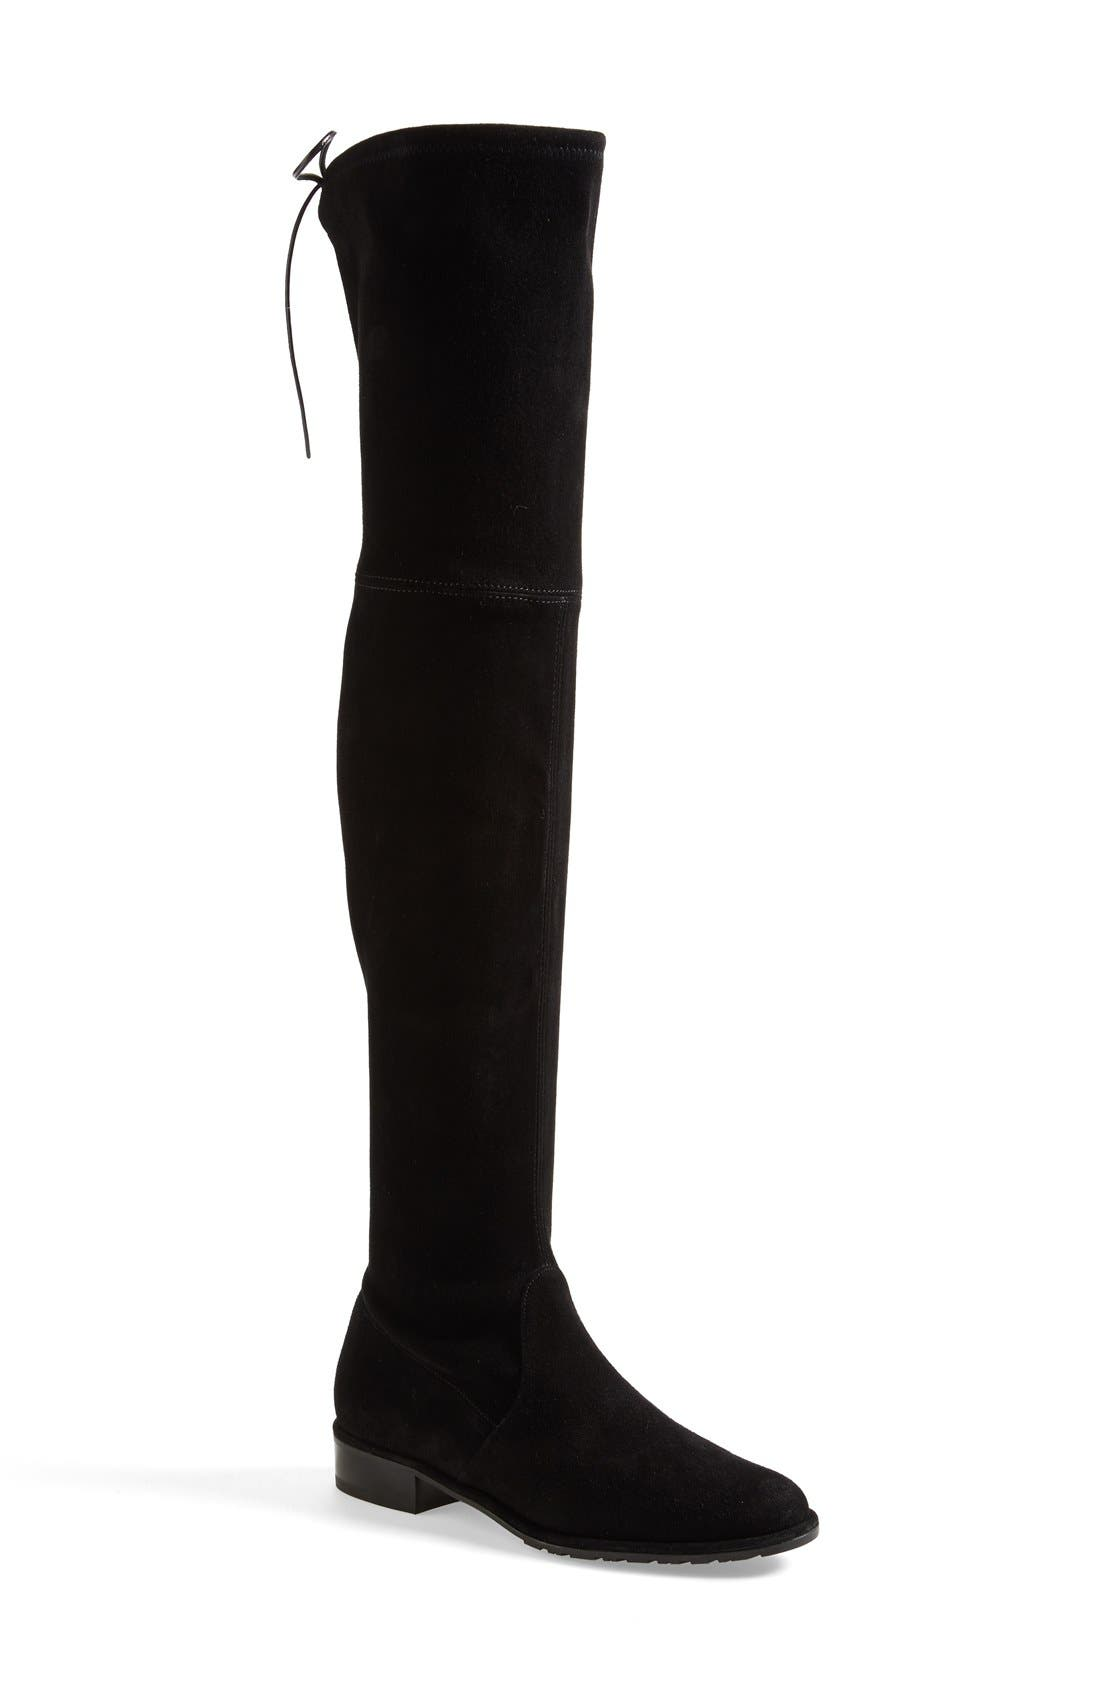 'Lowland' Over the Knee Boot,                             Main thumbnail 1, color,                             BLACK SUEDE